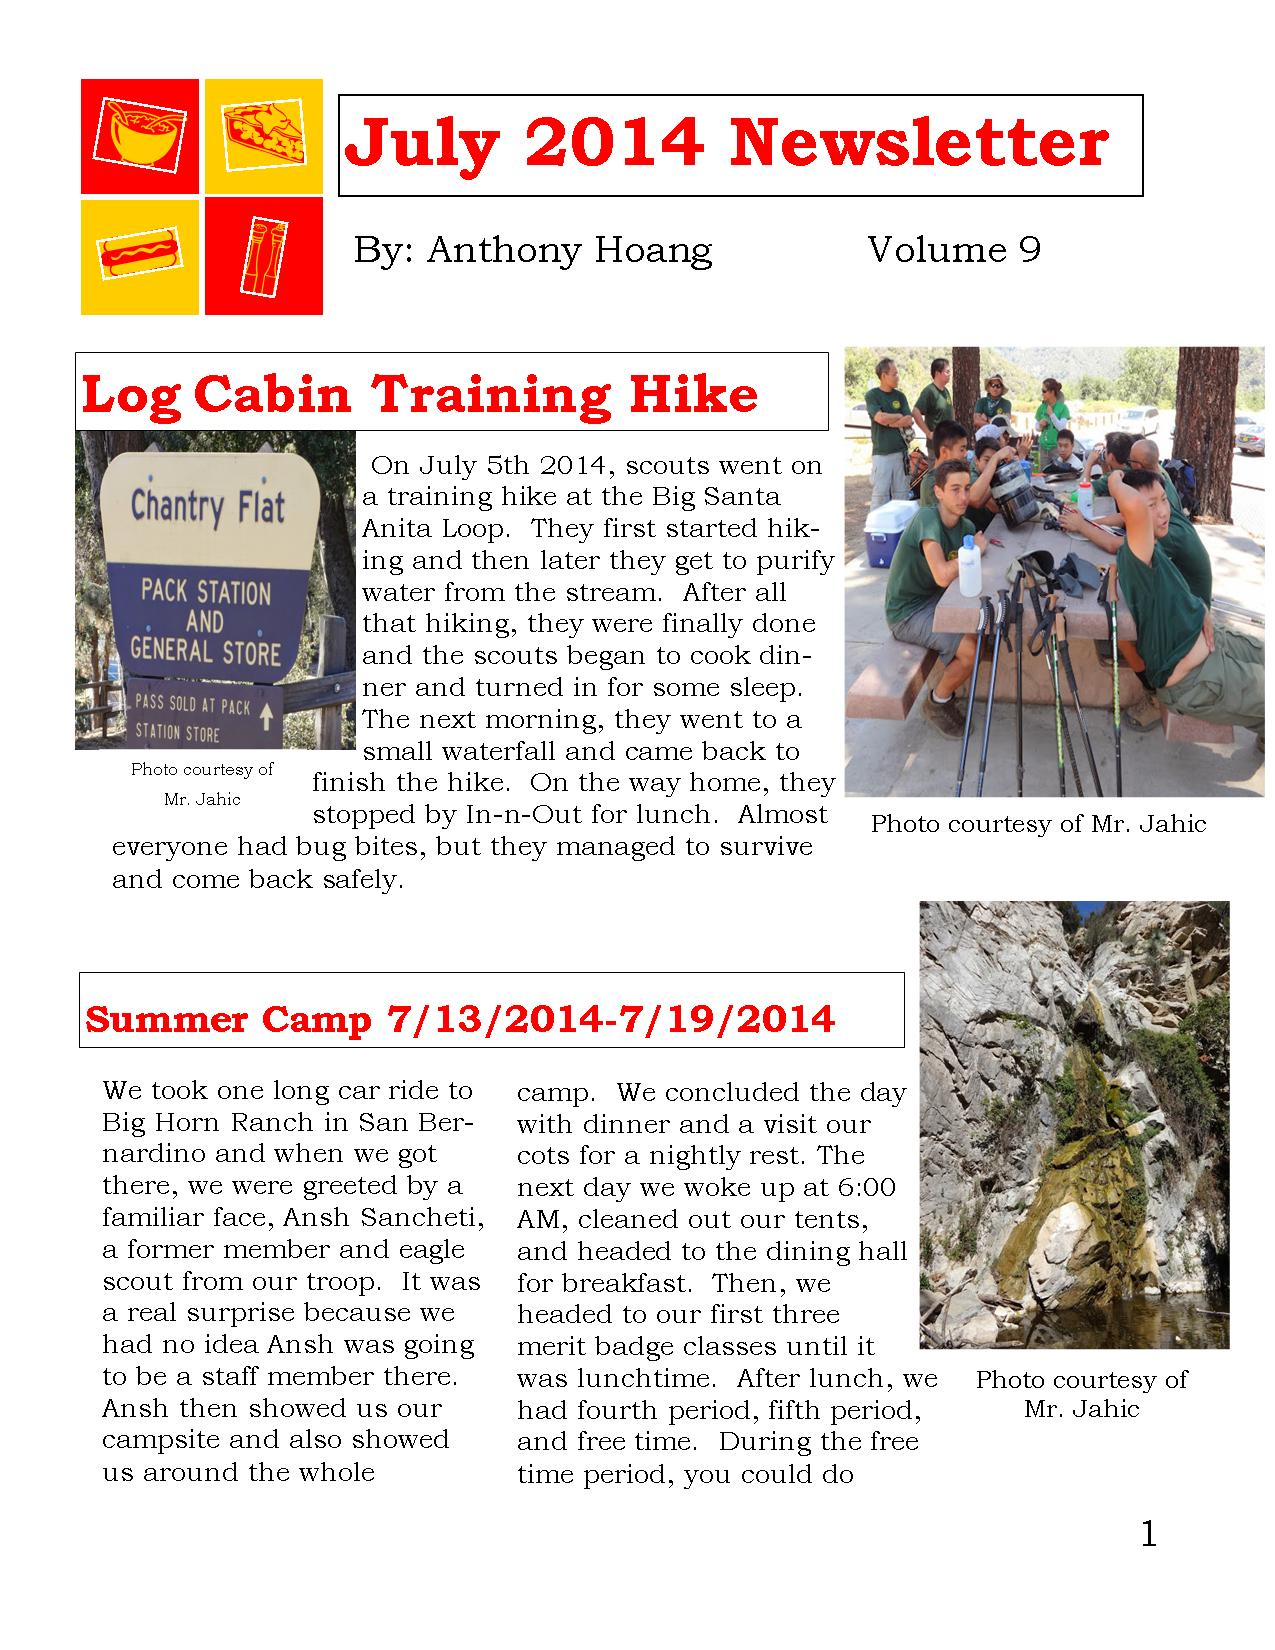 newsletter_2014jul1(1).jpg